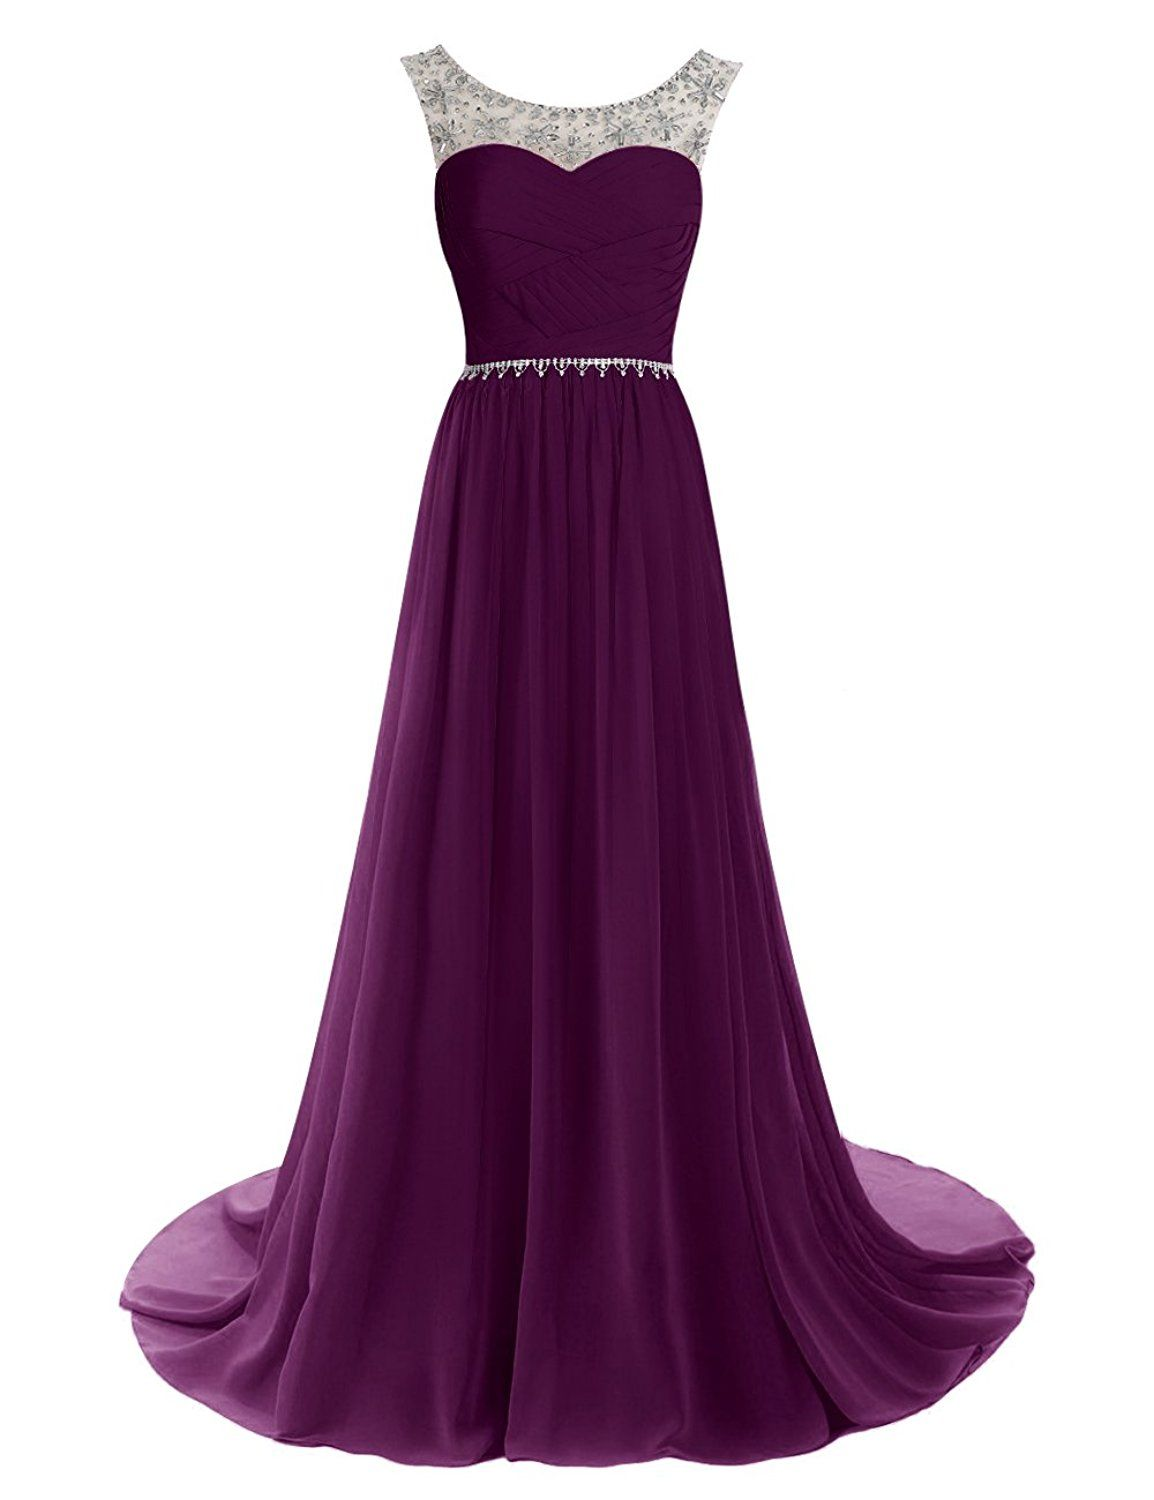 Dressystar chiffon dress long bridesmaid dress beading ball gown